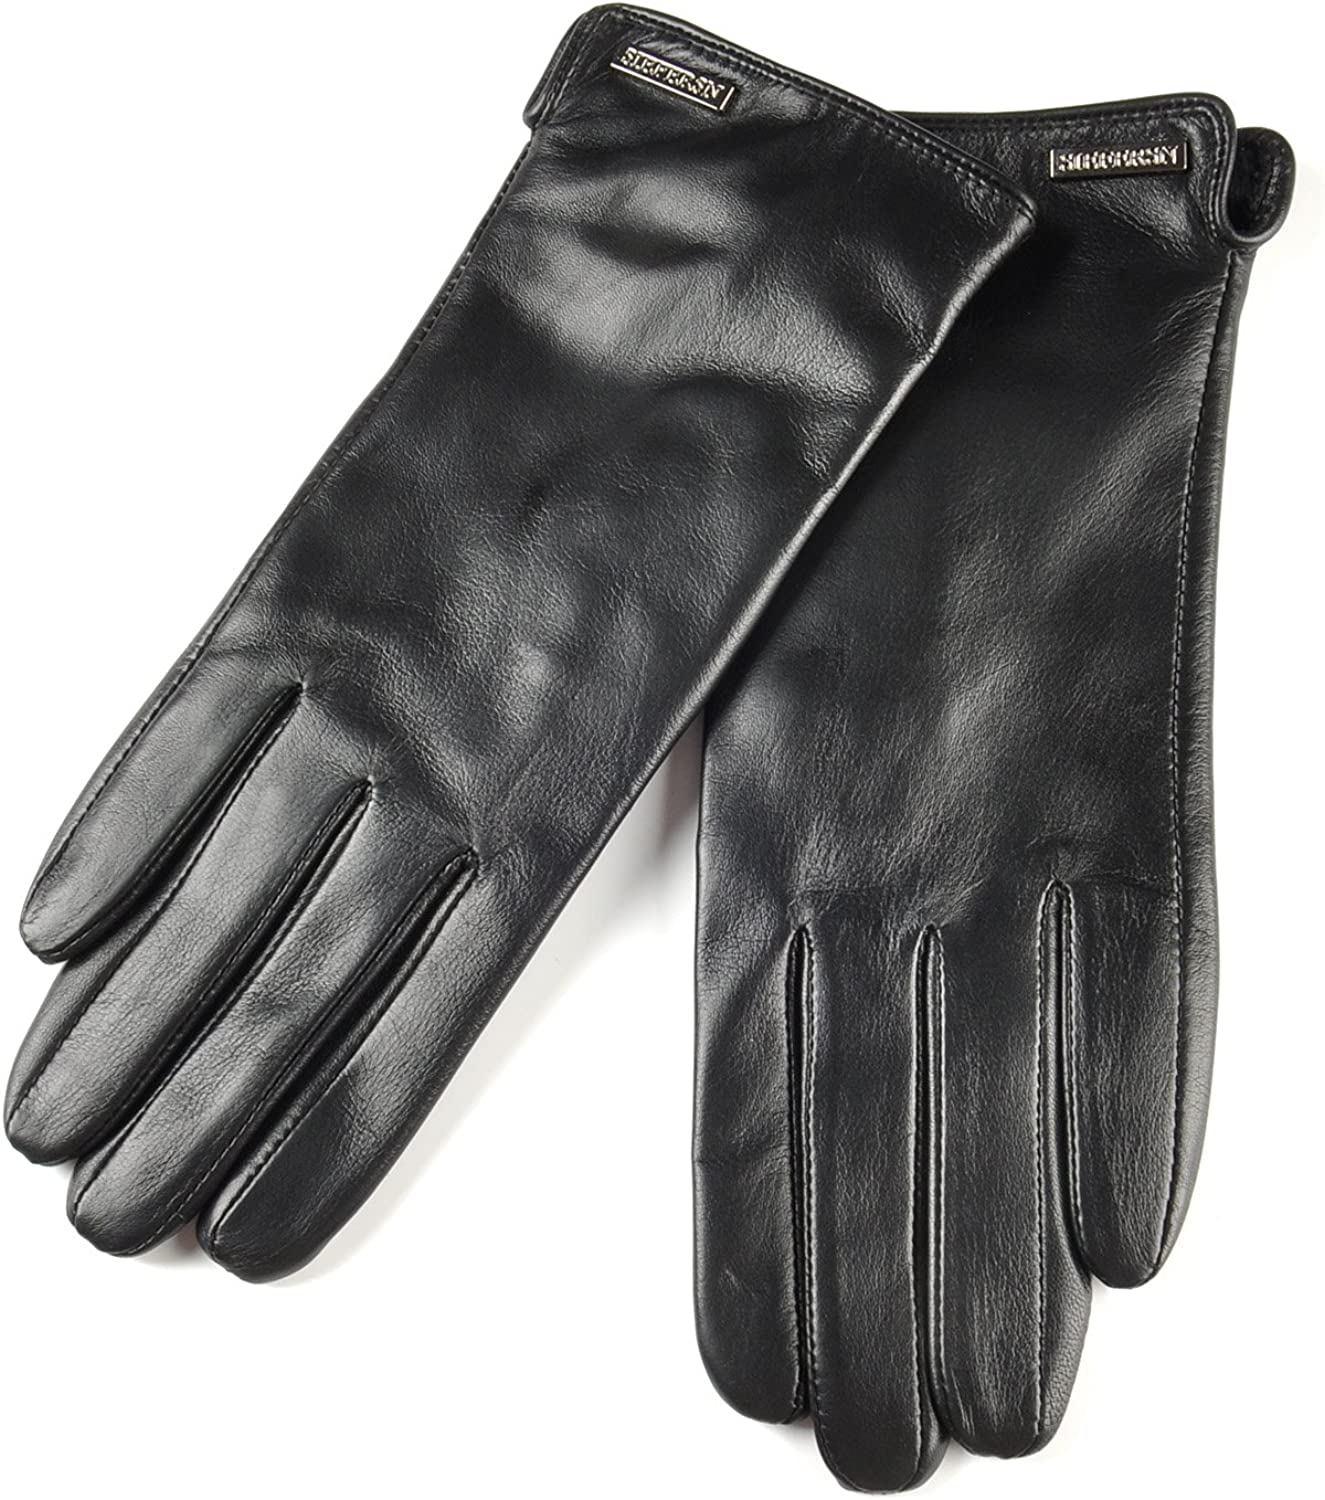 SIEFERSN Simple Basic Style Women's Nappa Gloves Whole Hands Touchscreen Winter Warm Driving Gloves 1164125041